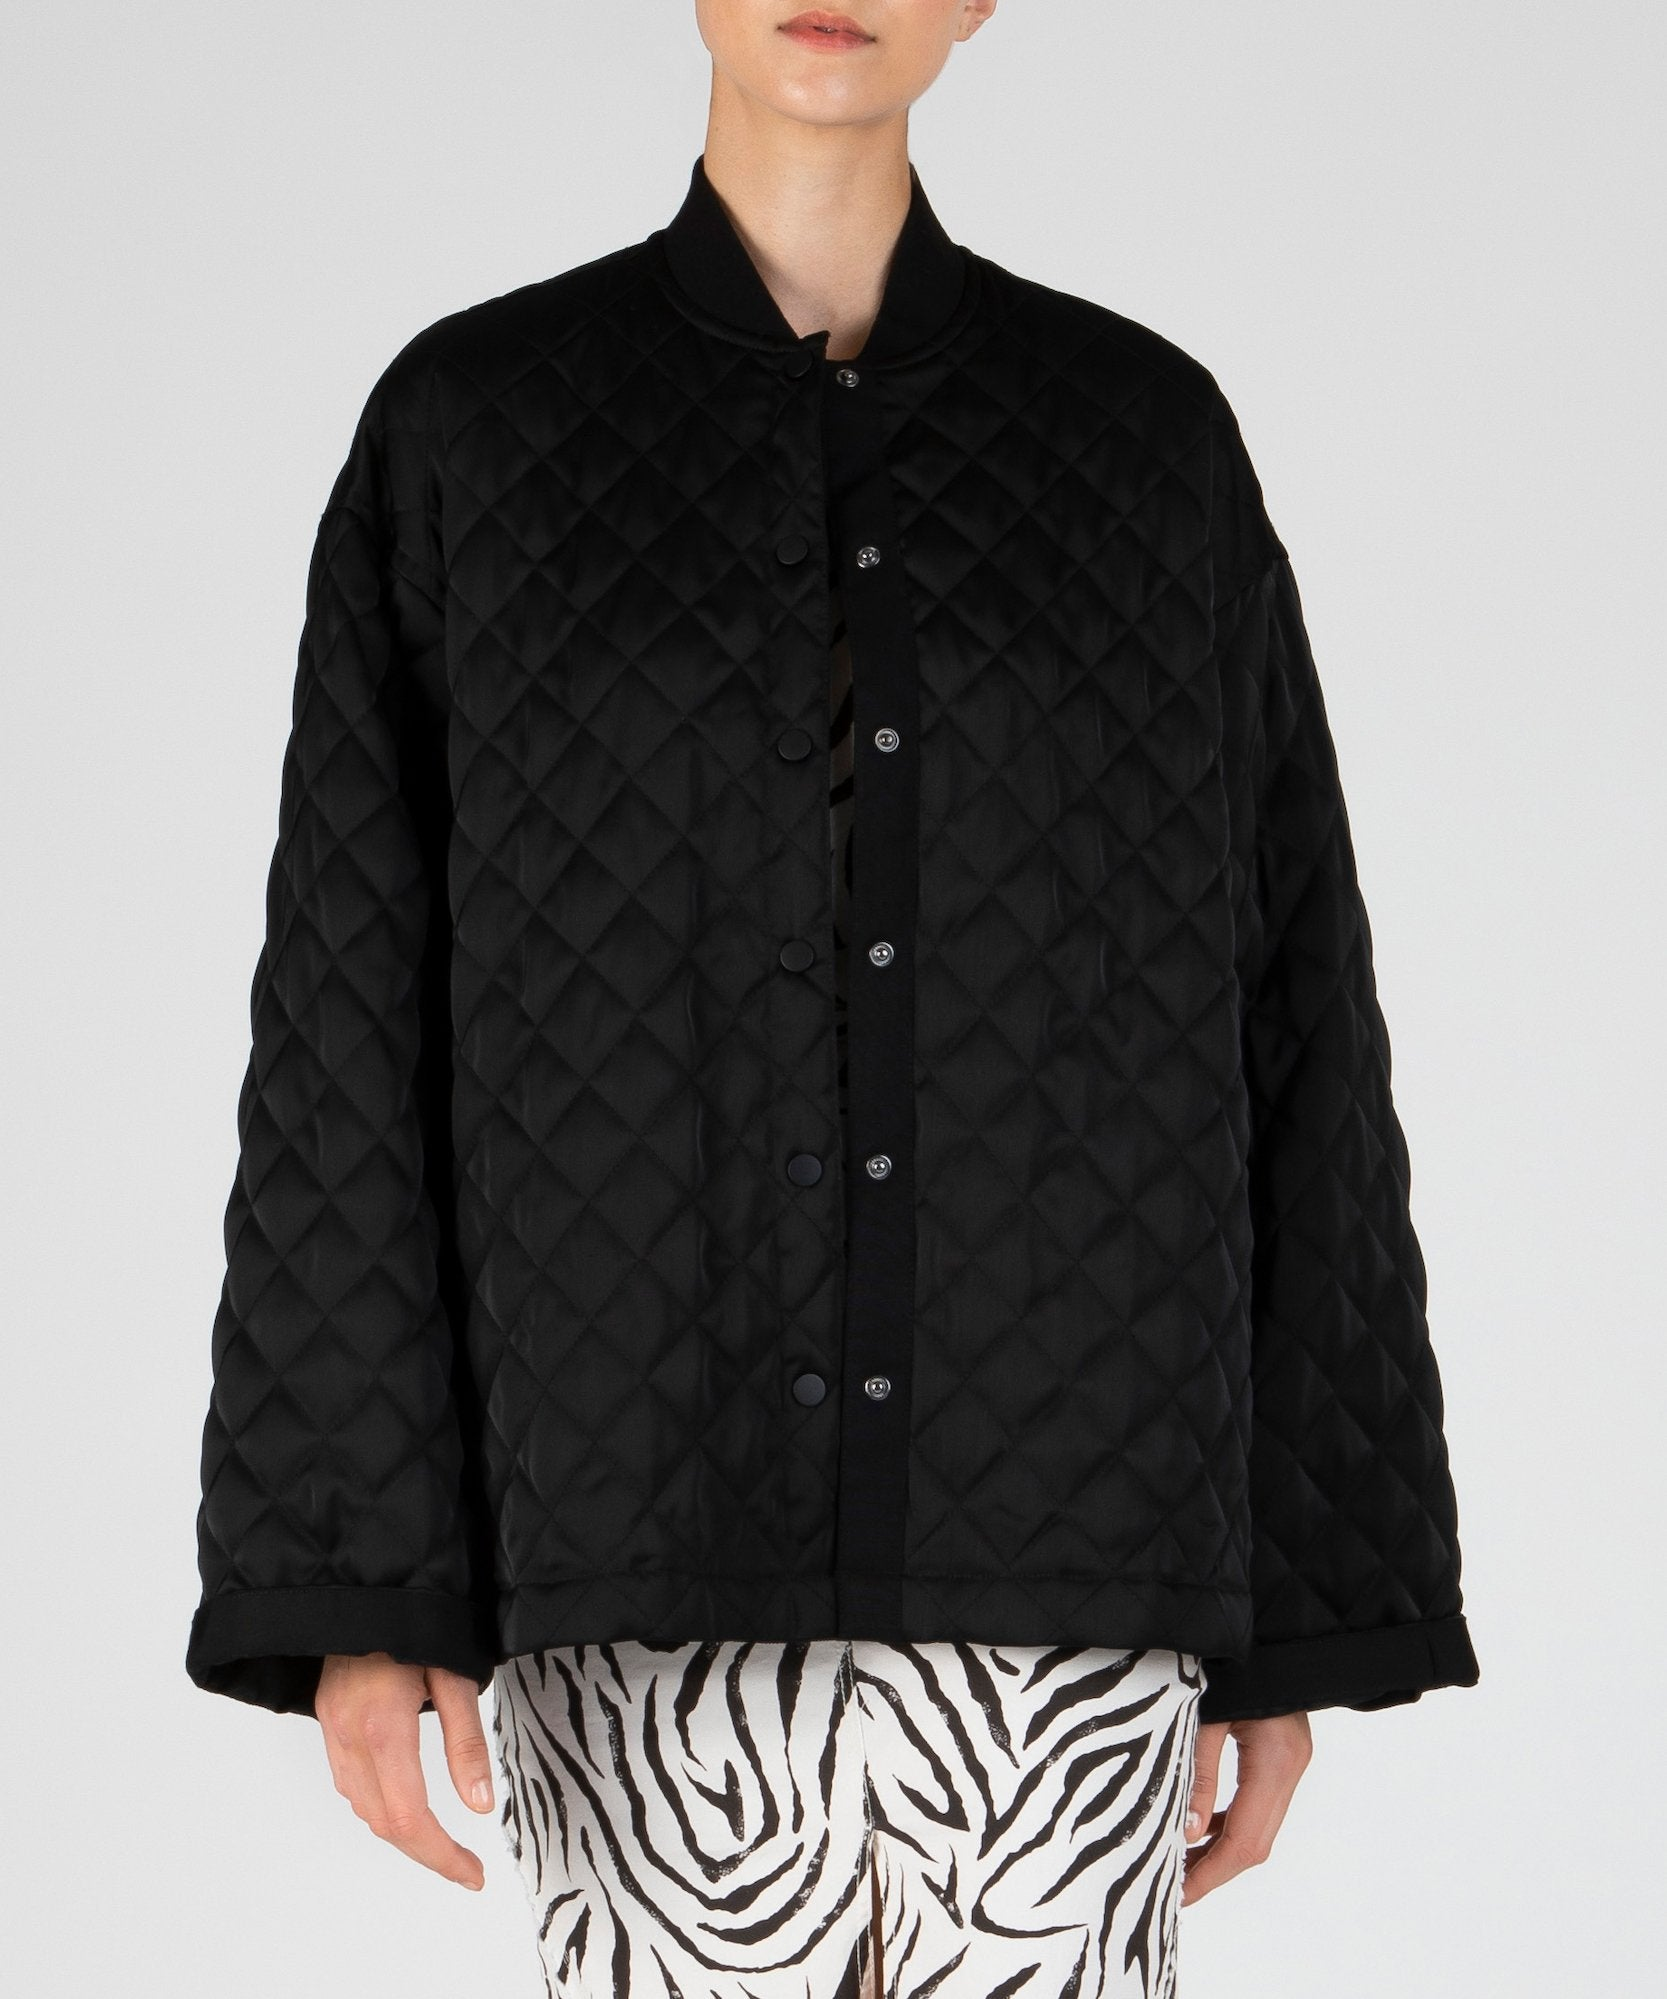 Black Quilted Oversized Coat - Women's Casual Jacket by ATM Anthony Thomas Melillo